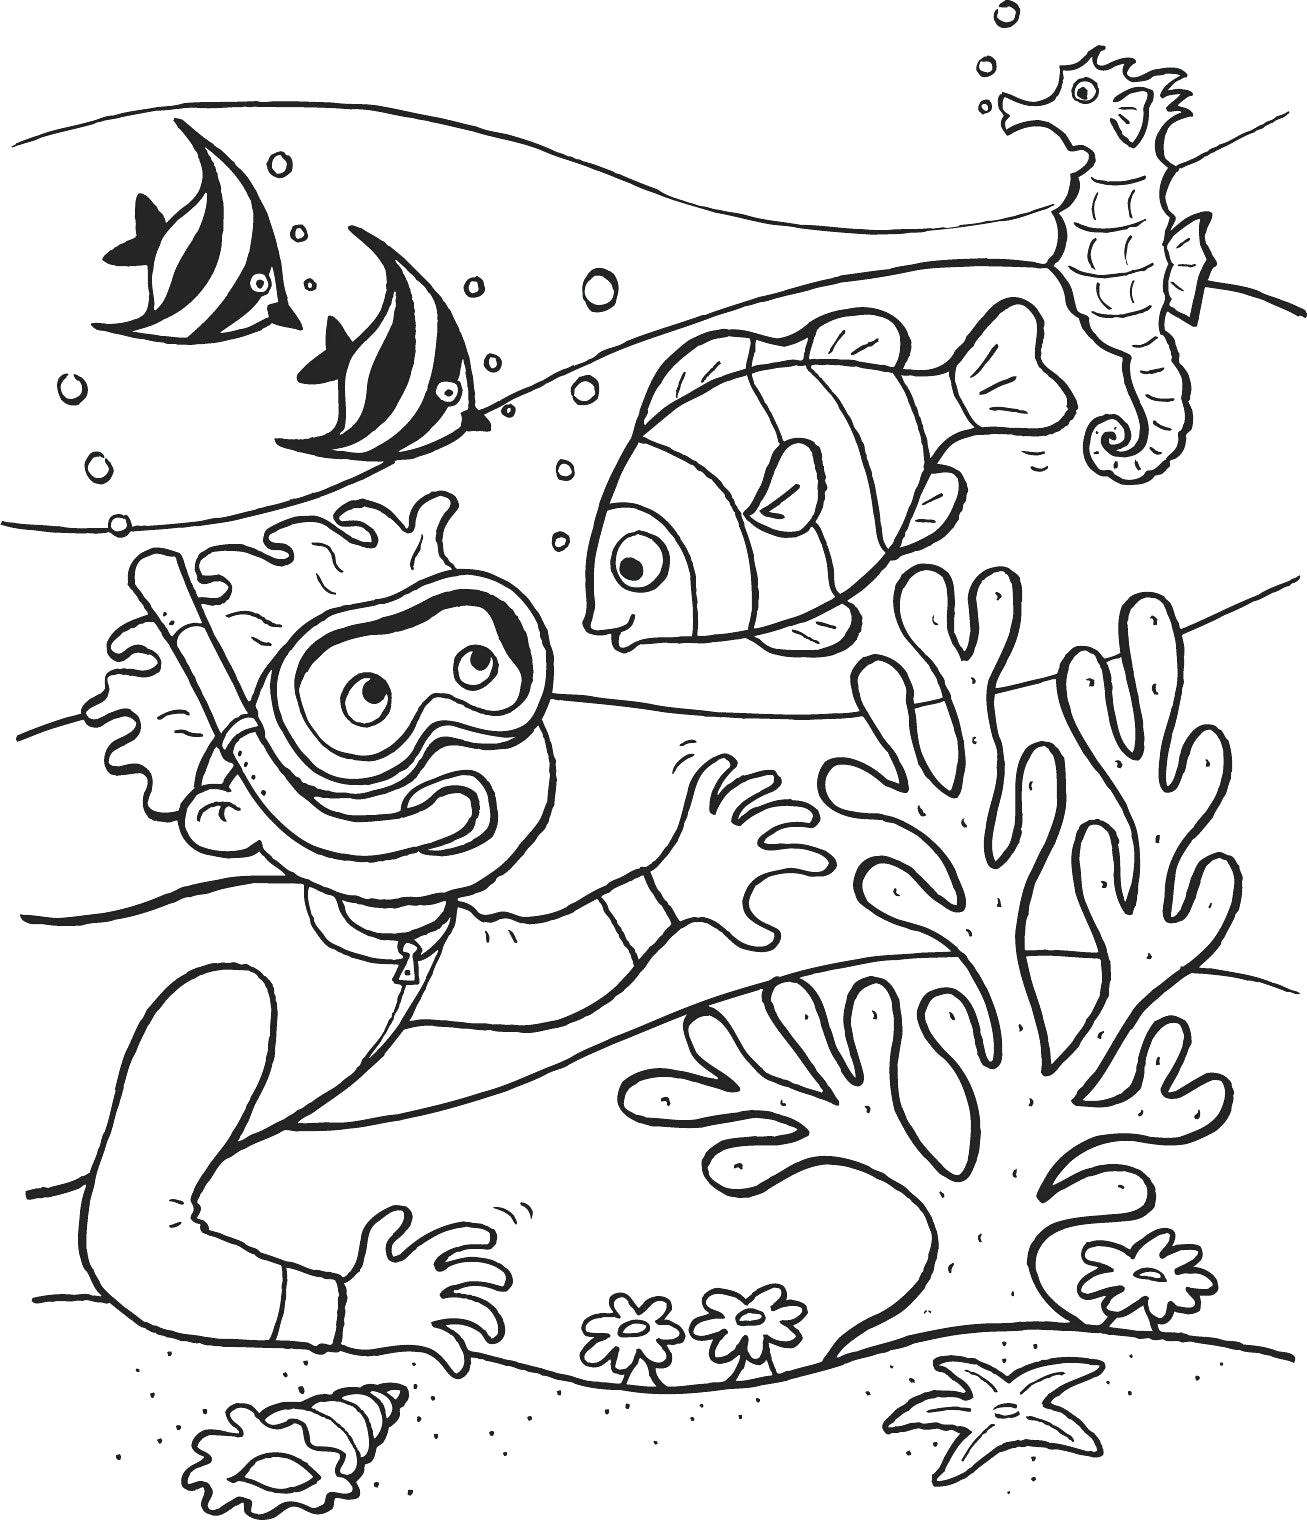 Underwater Scene Drawing At Getdrawings